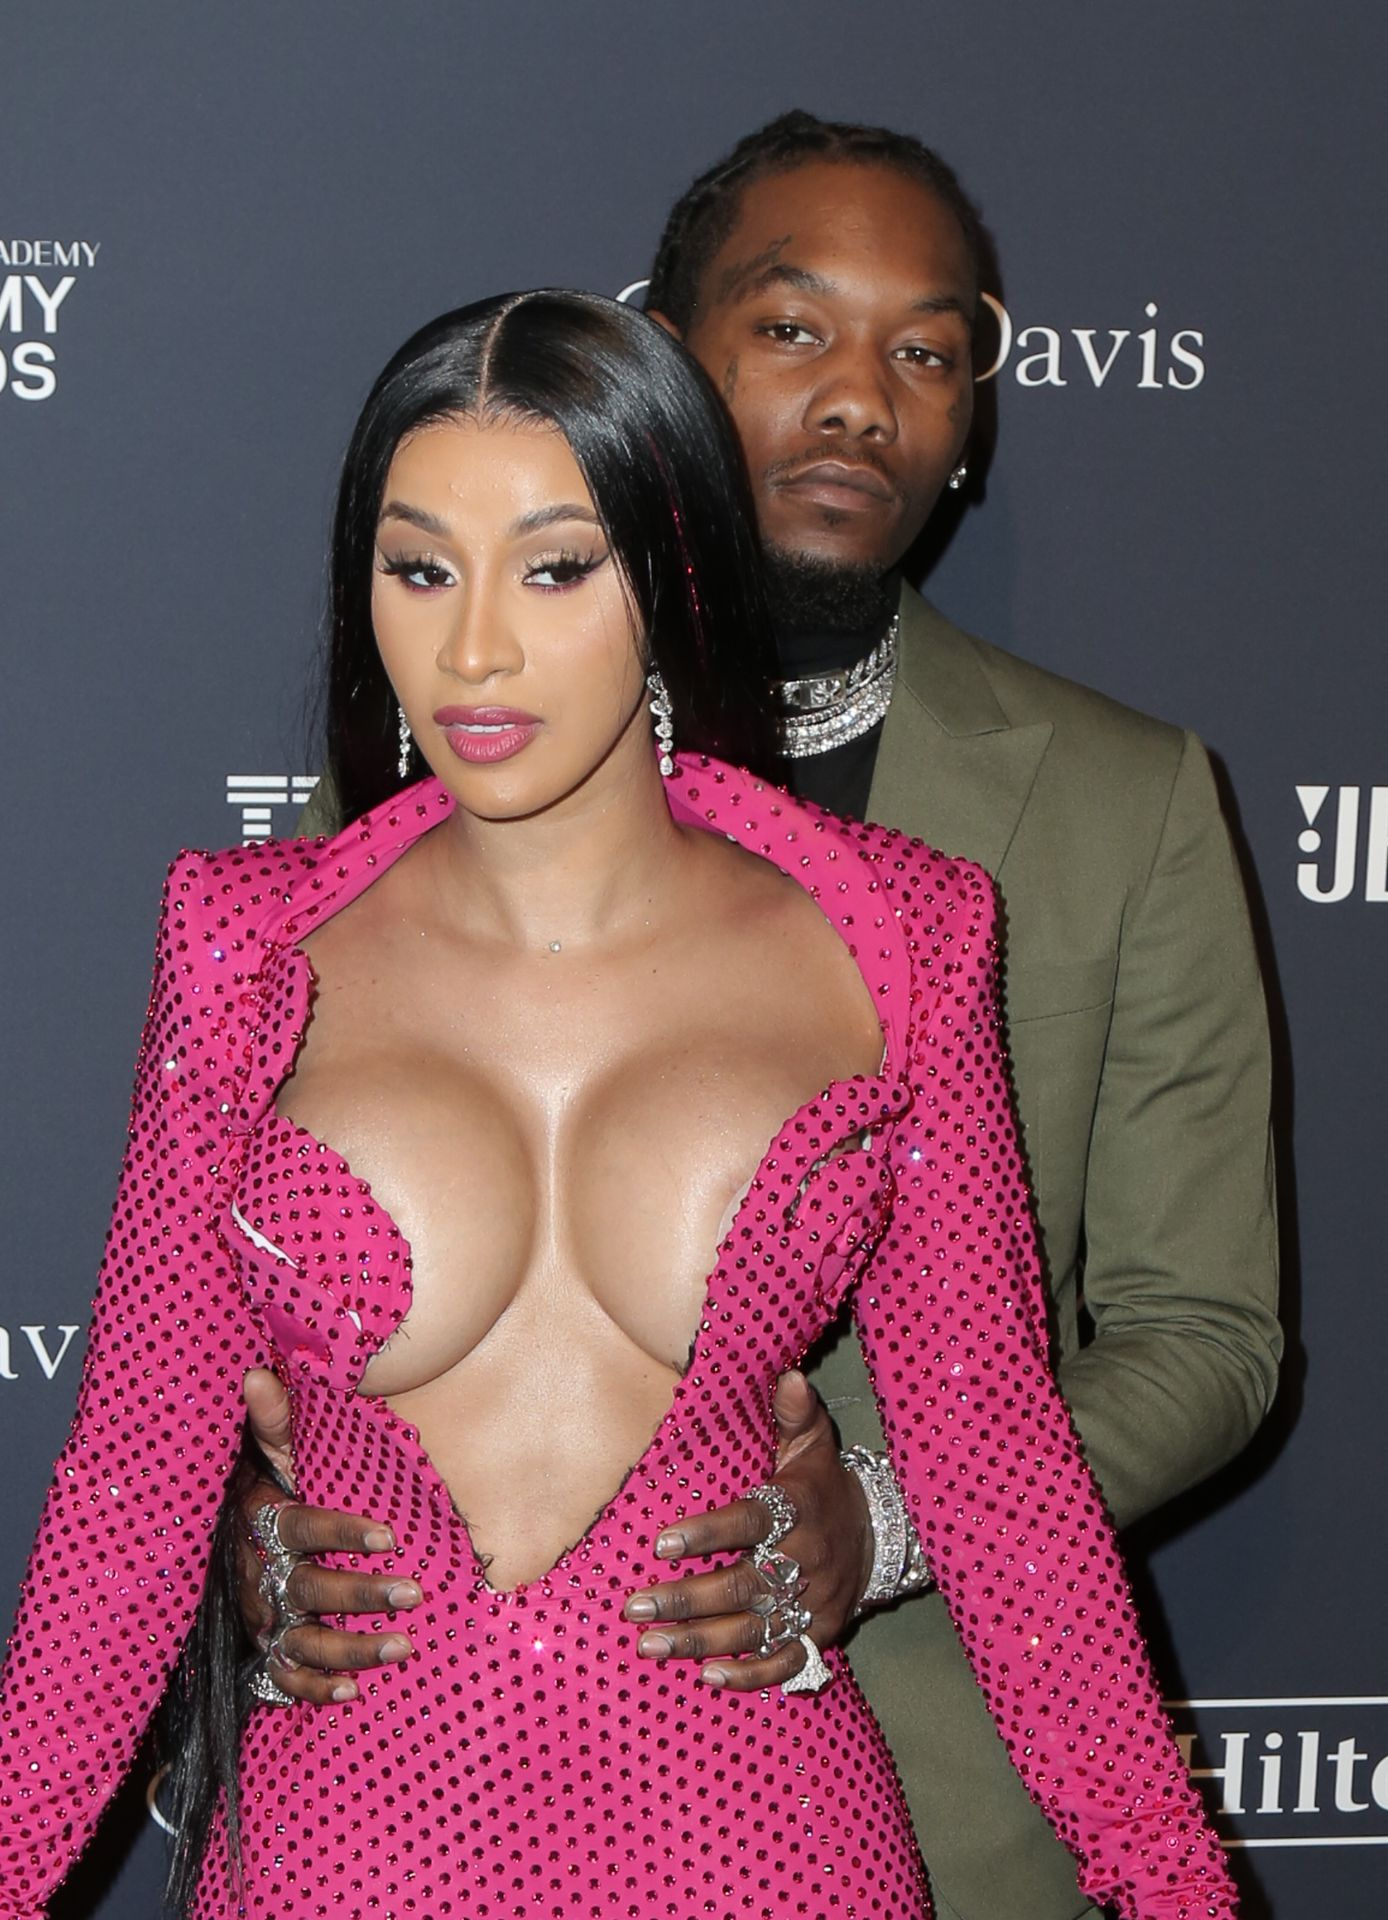 Offset Covers Cardi B's Boobs To Avoid Wardrobe Malfunction At Clive Davis Pre Grammy Party 0077